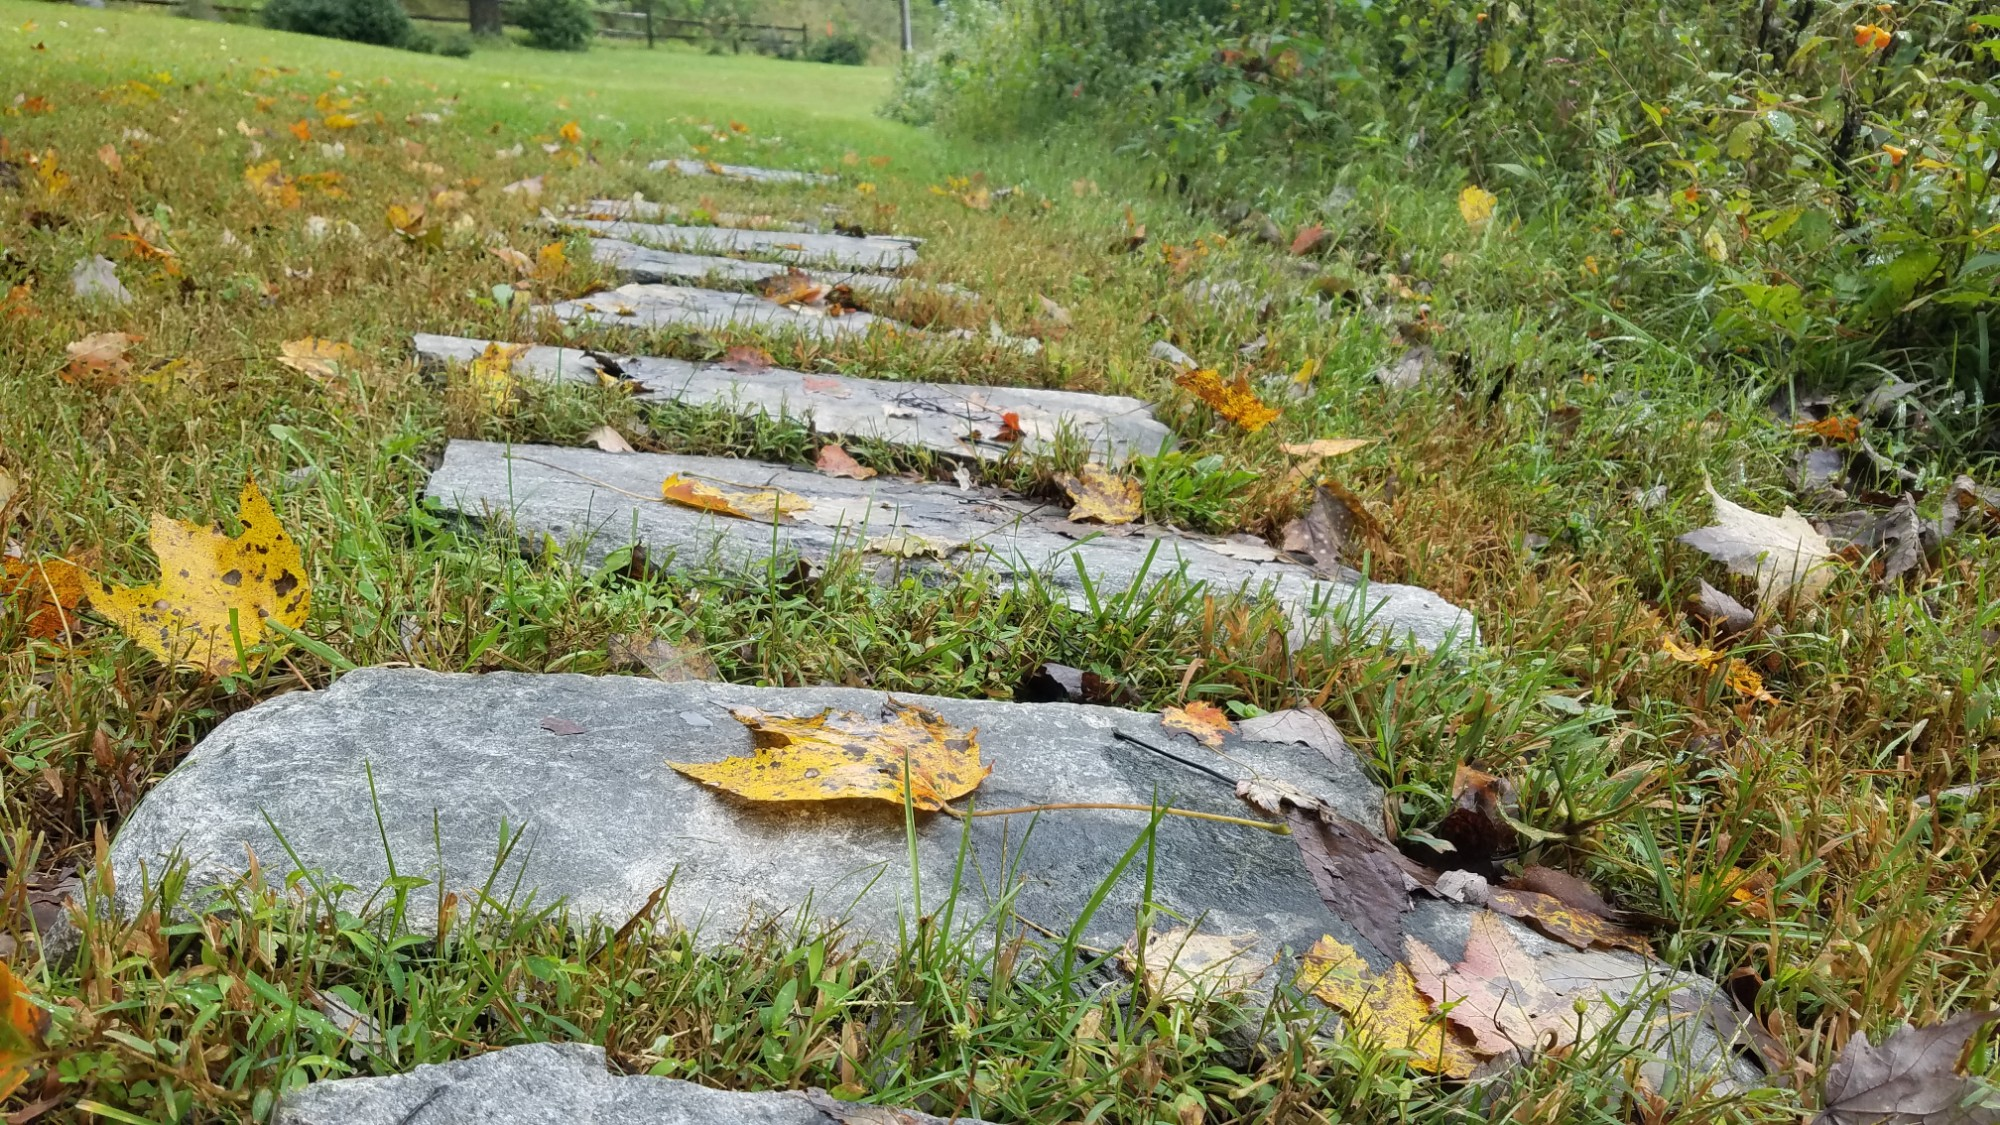 Flagstone path leading into the distant background with fall leaves covering some of the stones